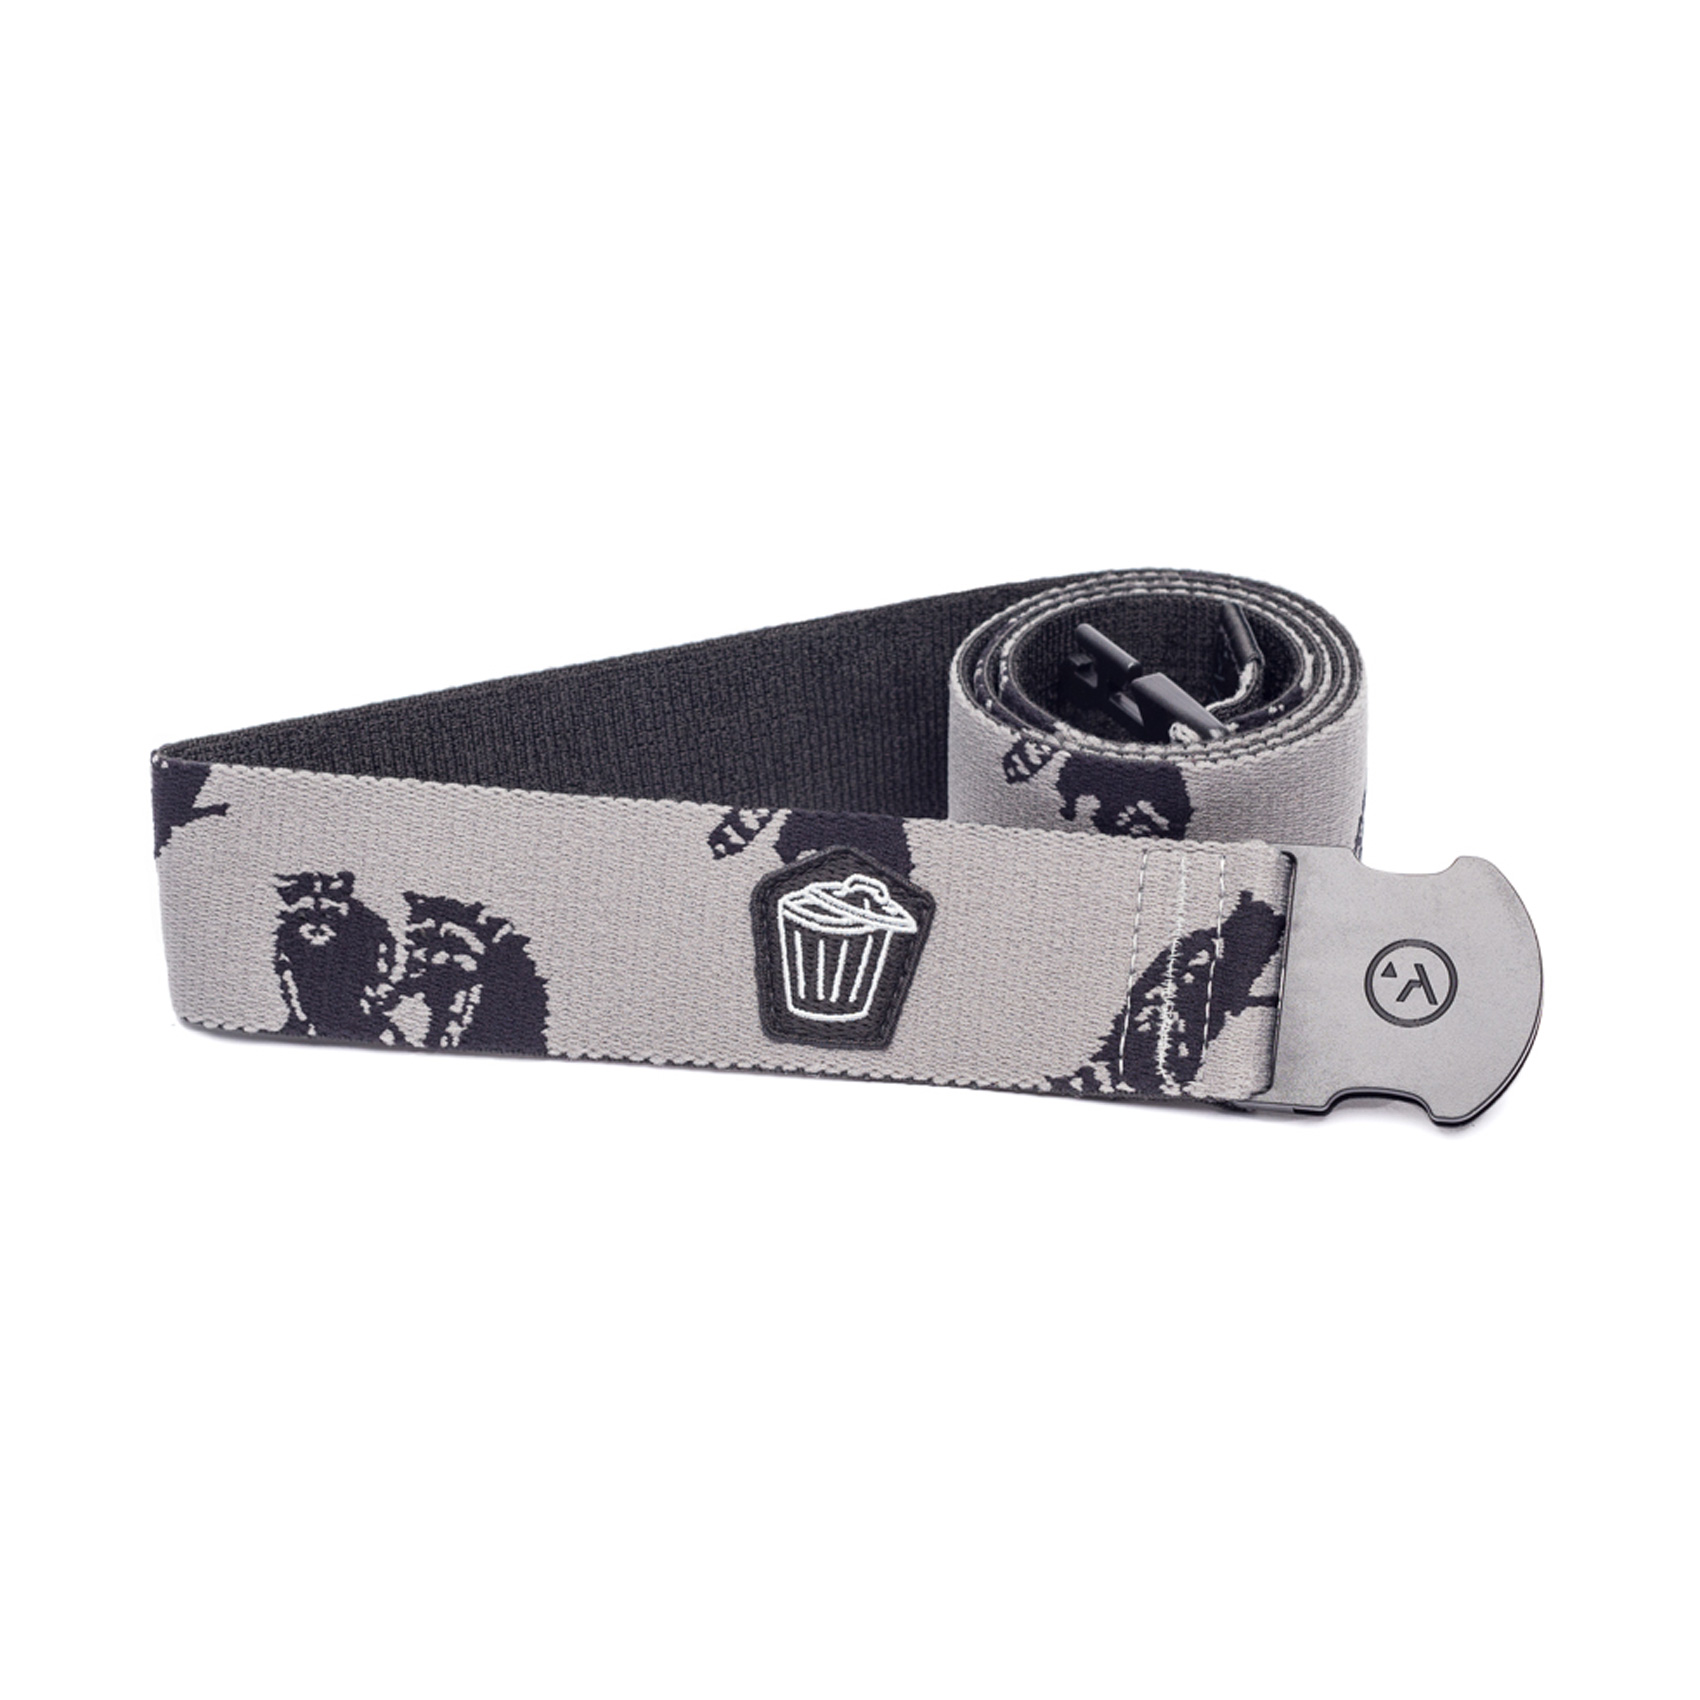 Product image of Arcade Belts 2017 Varmint Black Grey